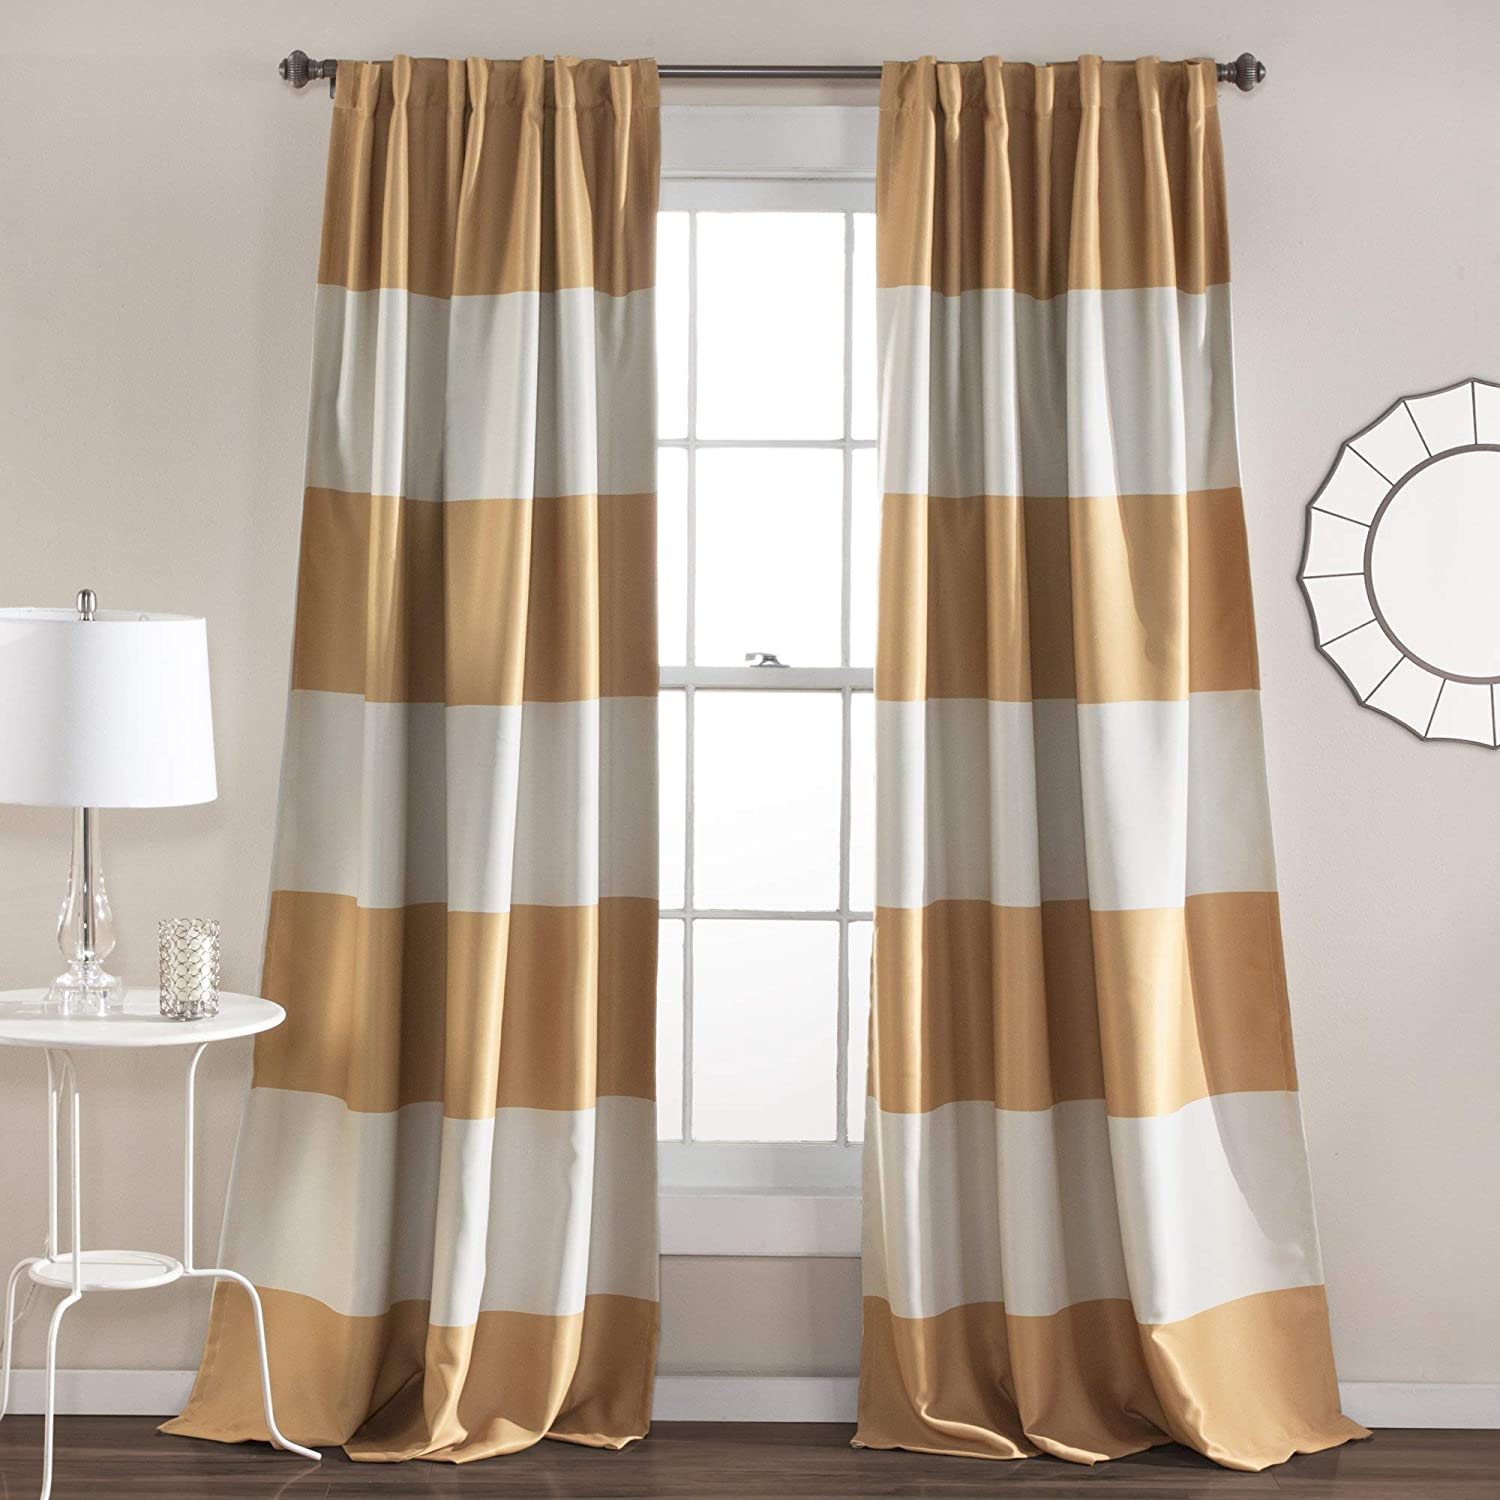 """Lush Decor Montego Striped Window Curtains Panel Set for Living Bedroom Dining Room Pair 84/"""" x 52/"""" Black Triangle Home Fashions C42199P15-000"""